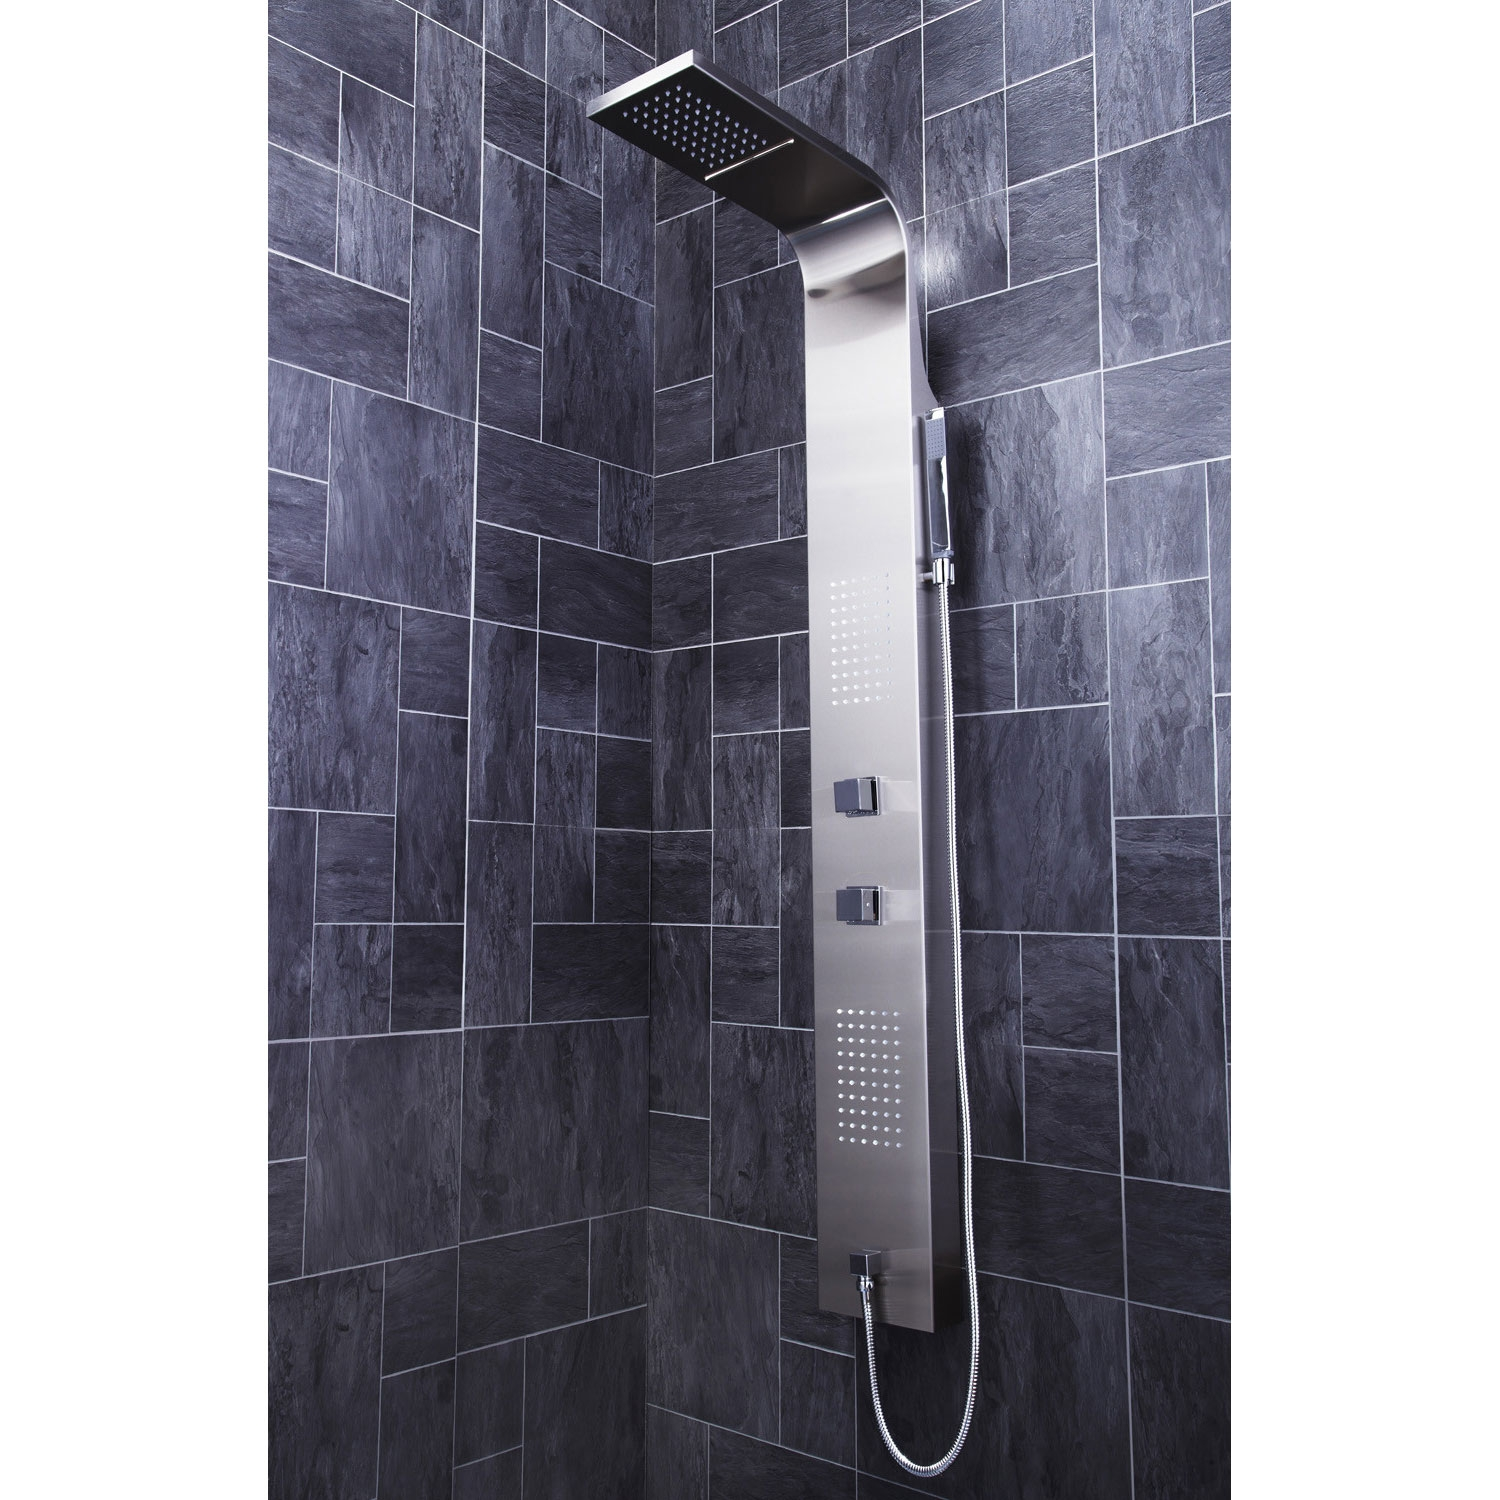 Verona Modo Thermostatic Shower Panel 2 Built-in Body Jets with Shower Hand-0